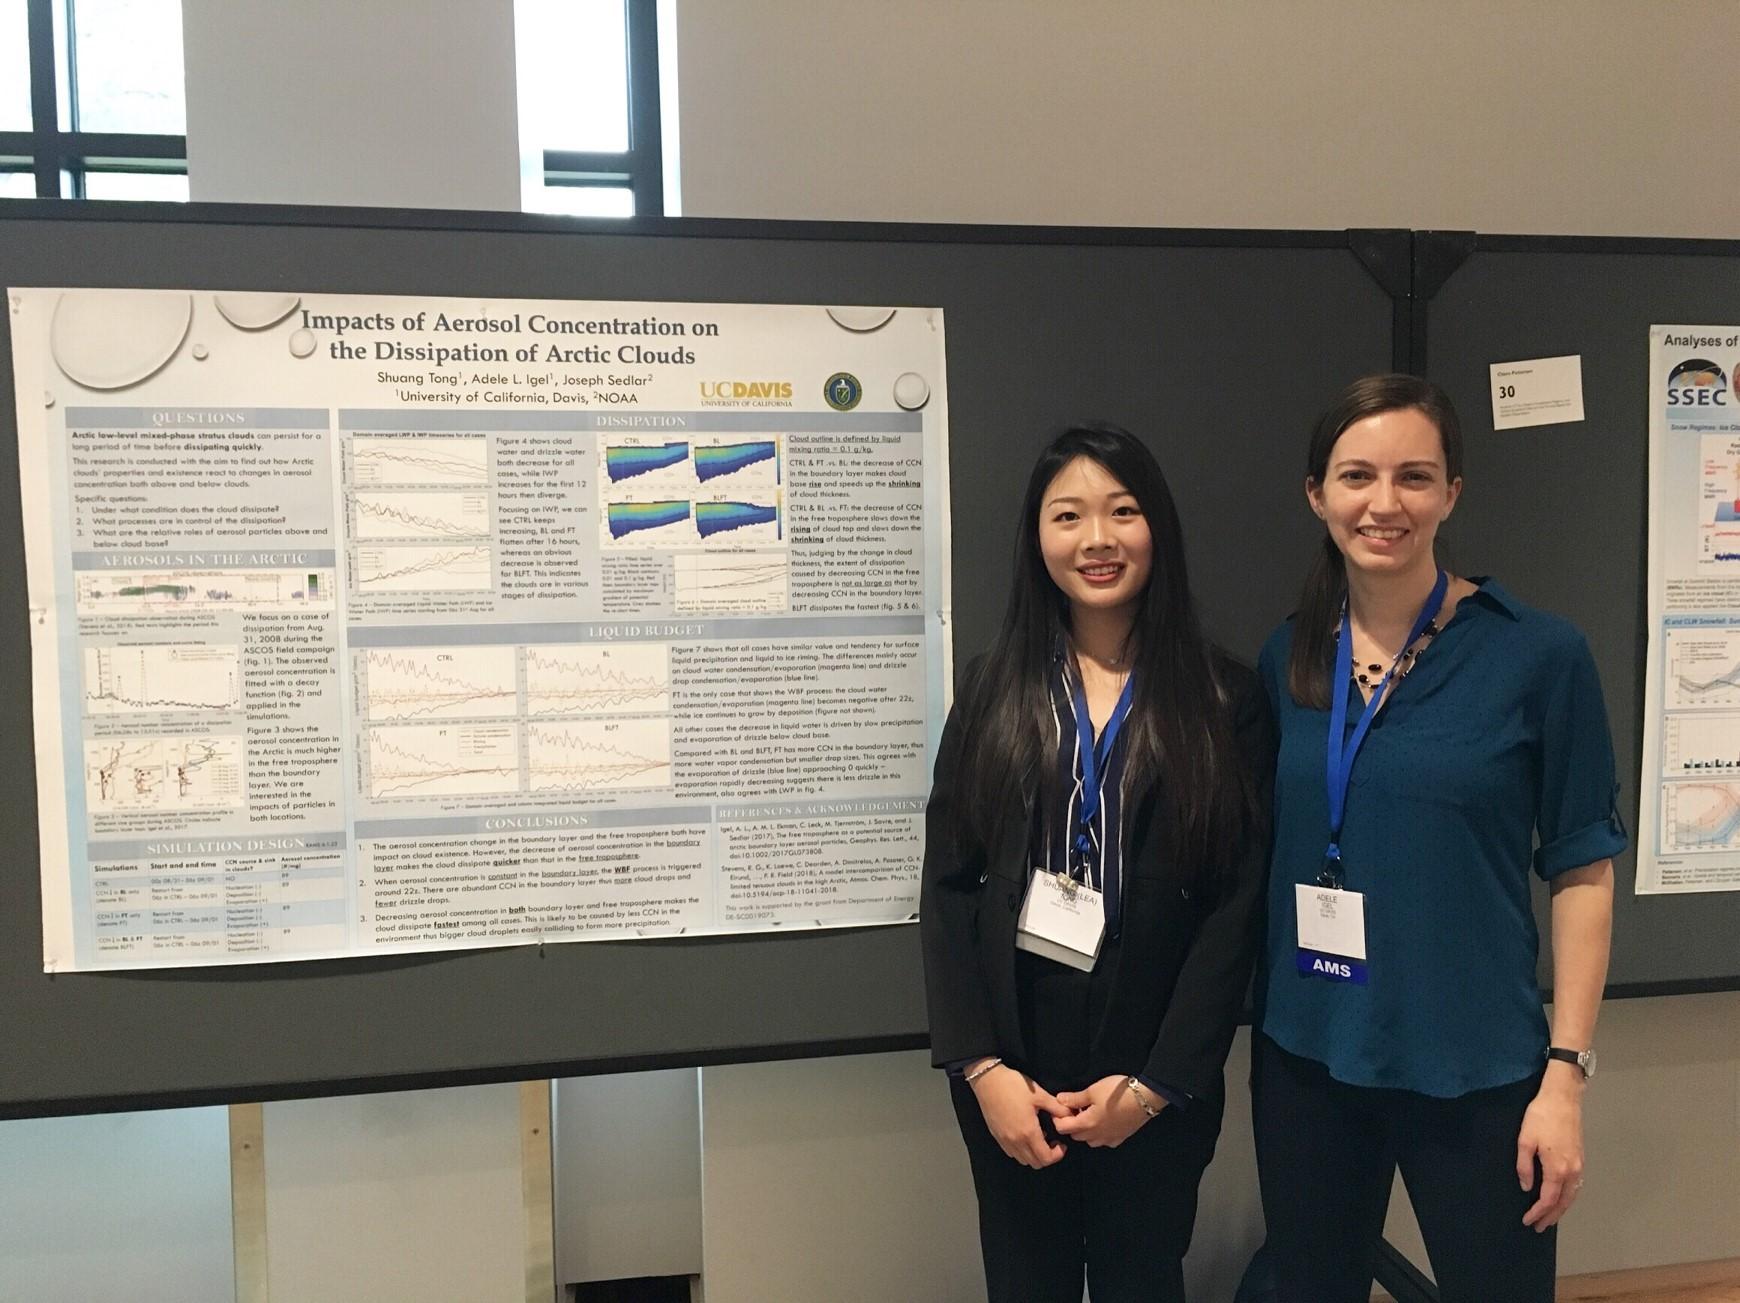 Adele Igel, at right, poses with former student Shuang (Lea) Tong at the American Meteorological Society's Polar Meteorology and Oceanography meeting in 2019. Tong's poster, pictured, presented the first results from Igel's ASR project.